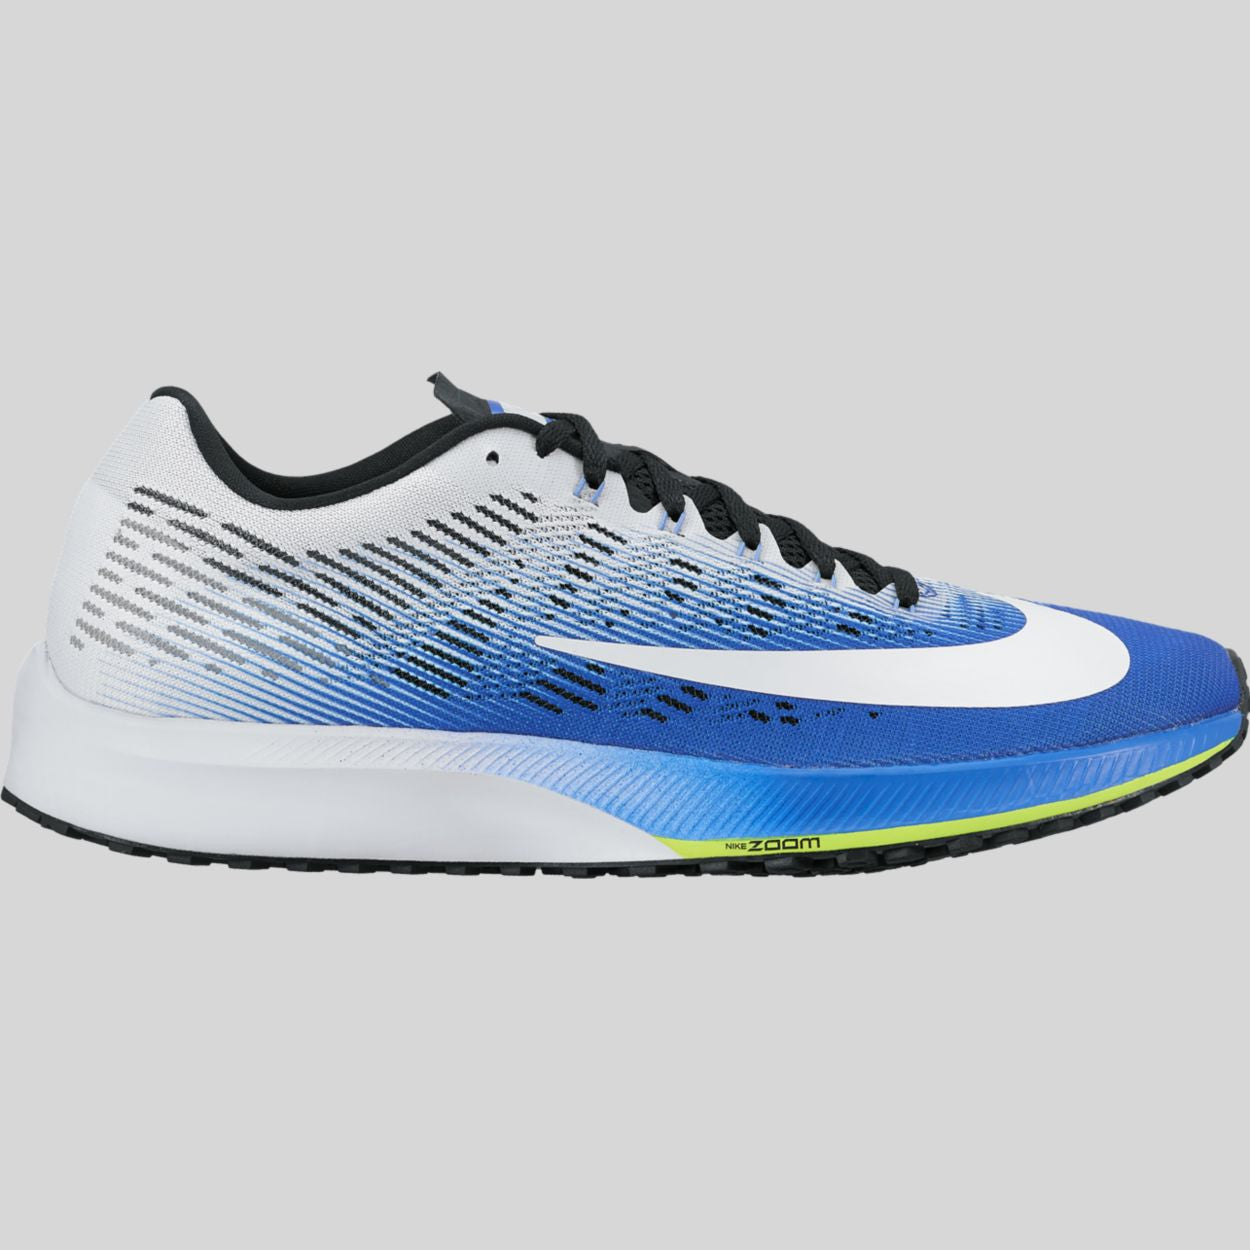 quality design c7836 49422 Nike Air Zoom Elite 9 Paramount Blue White Black Volt (863769-400)